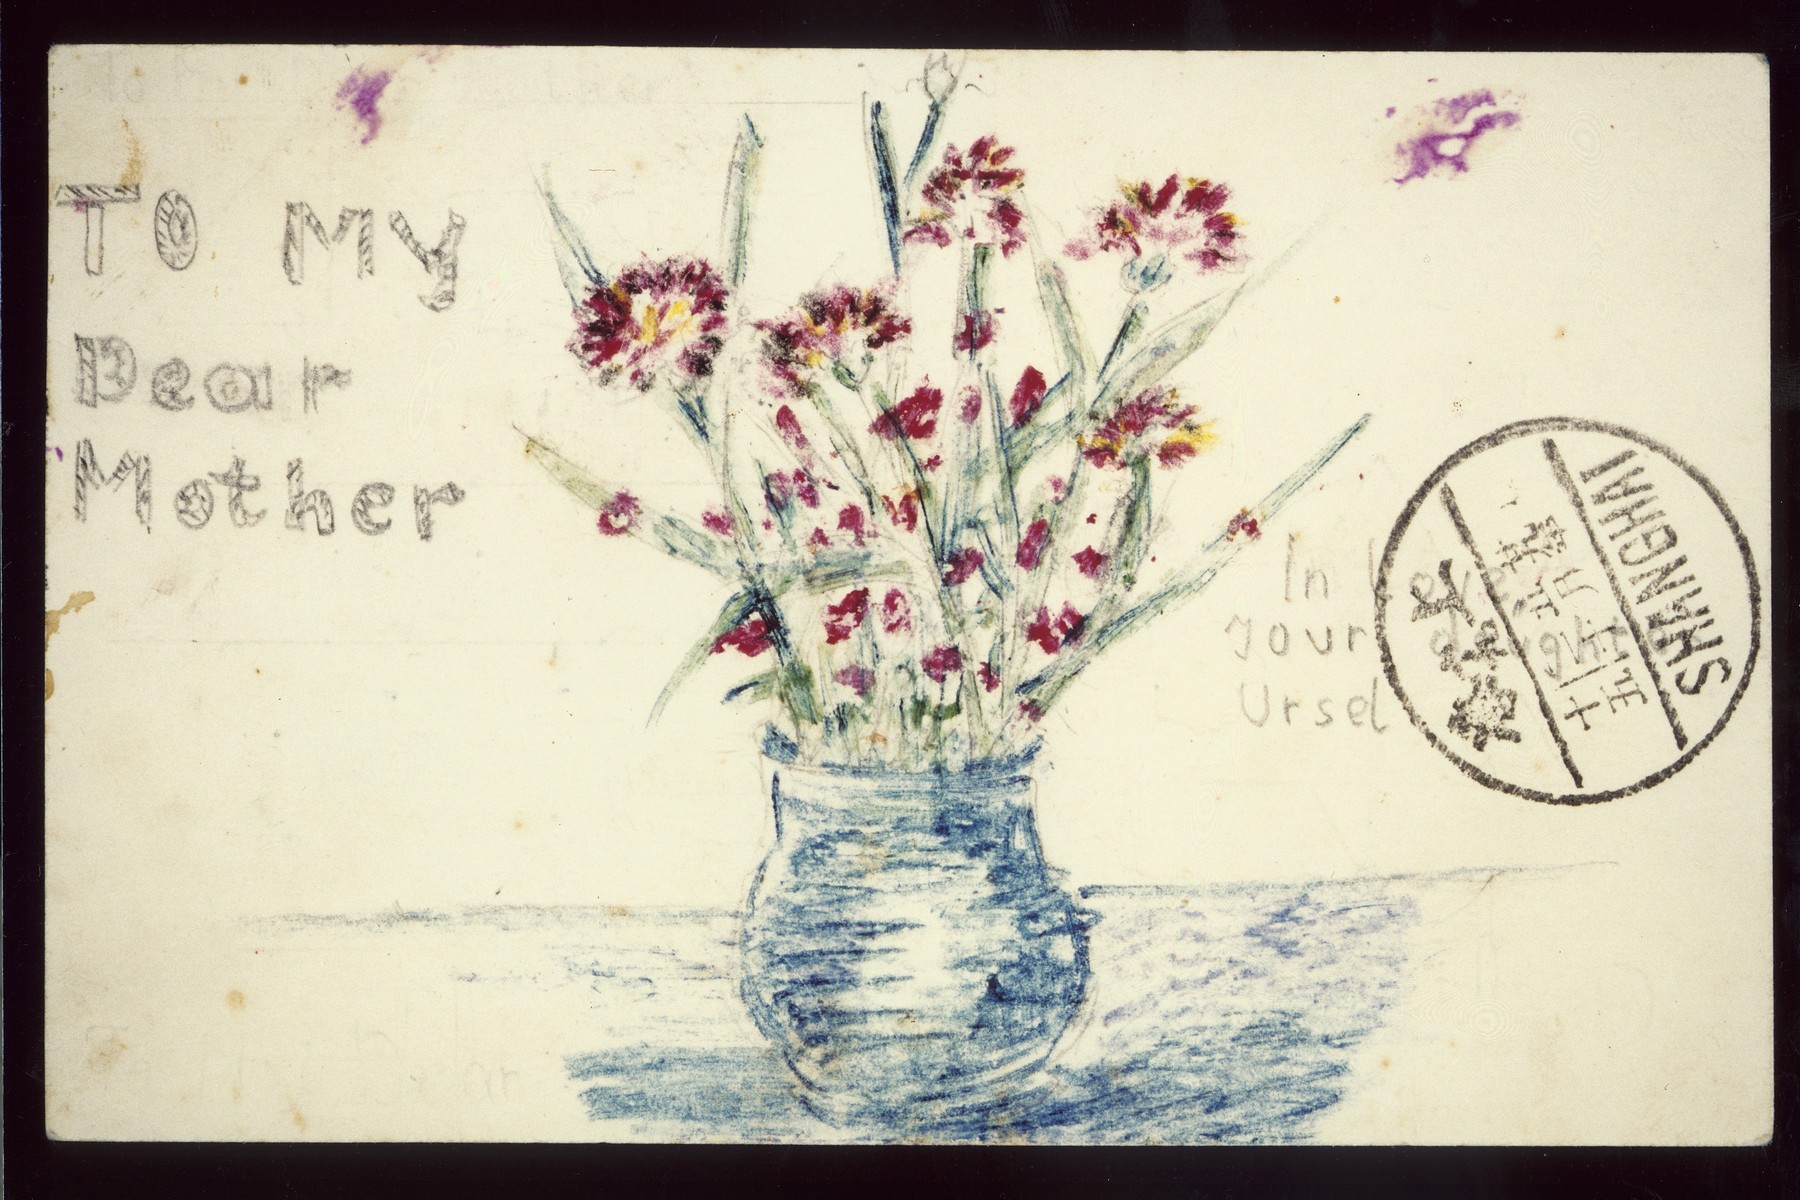 Mothers' Day greeting on a pre-printed Shanghai Jewish Youth Association postcard sent to Gerda Harpuder by her daughter Ursula.  The flipside of the postcard features a color drawing of a vase with flowers and a greeting from Ursula.